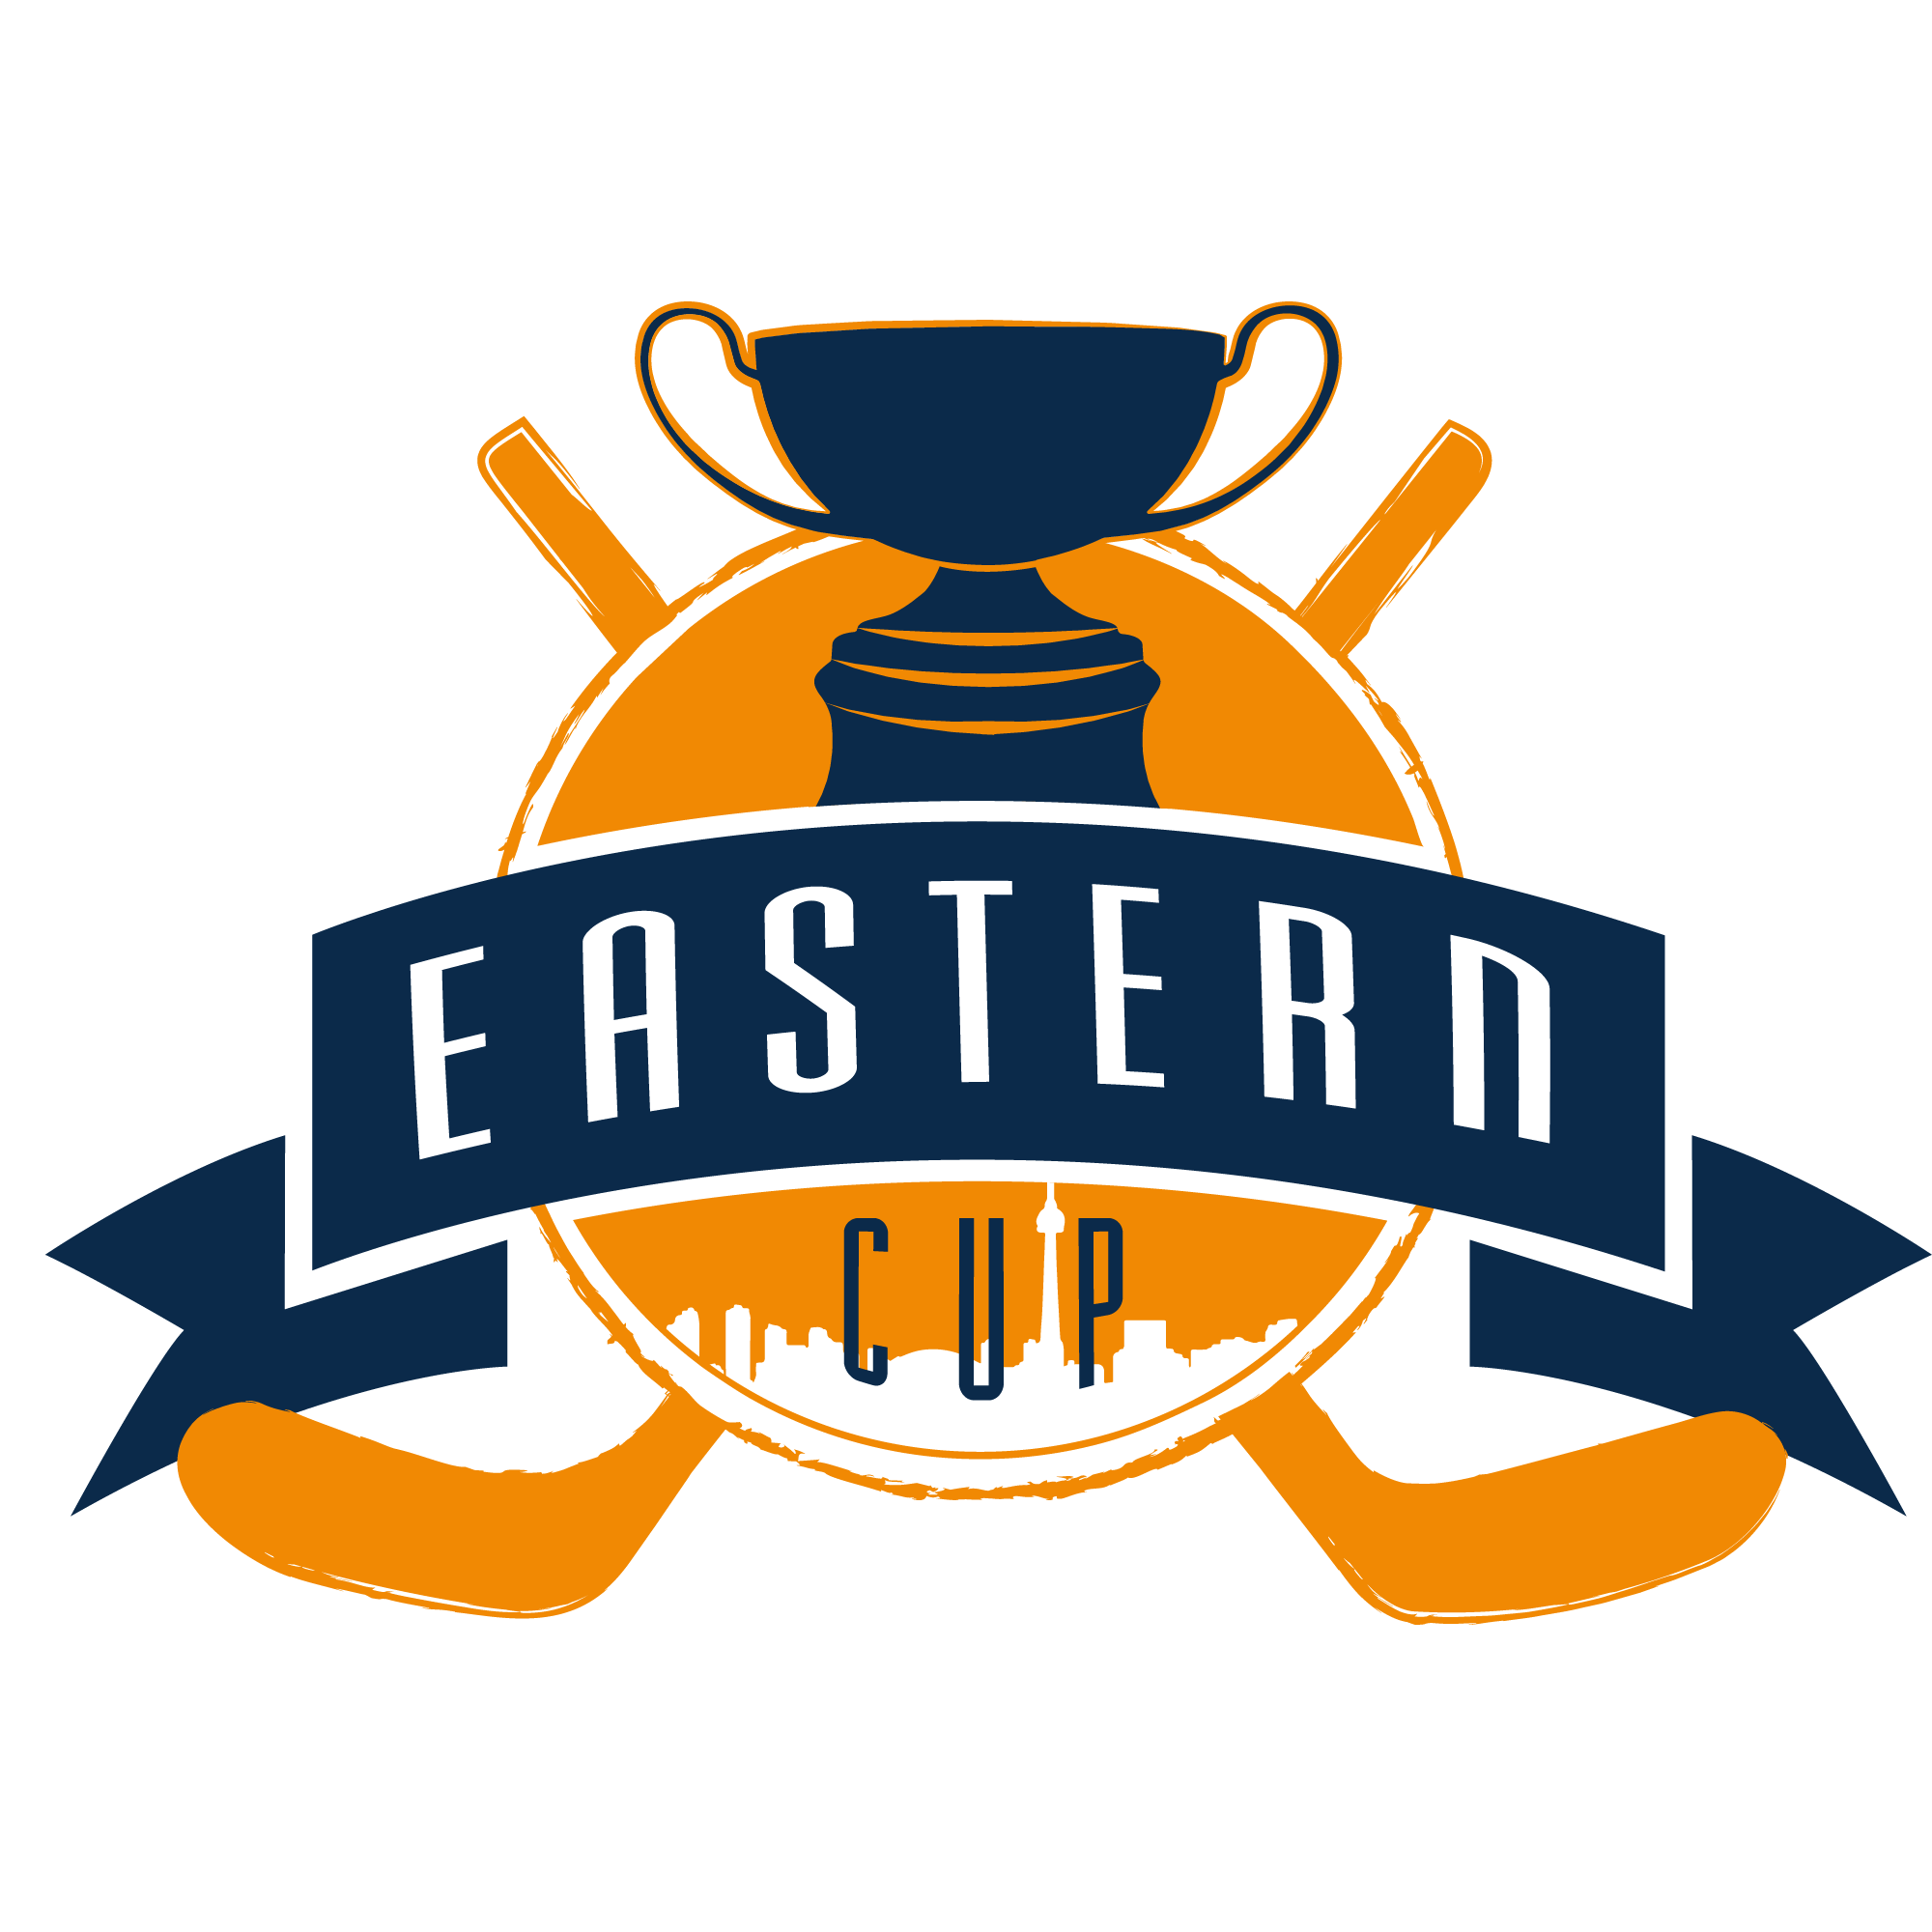 Eastern-Cup